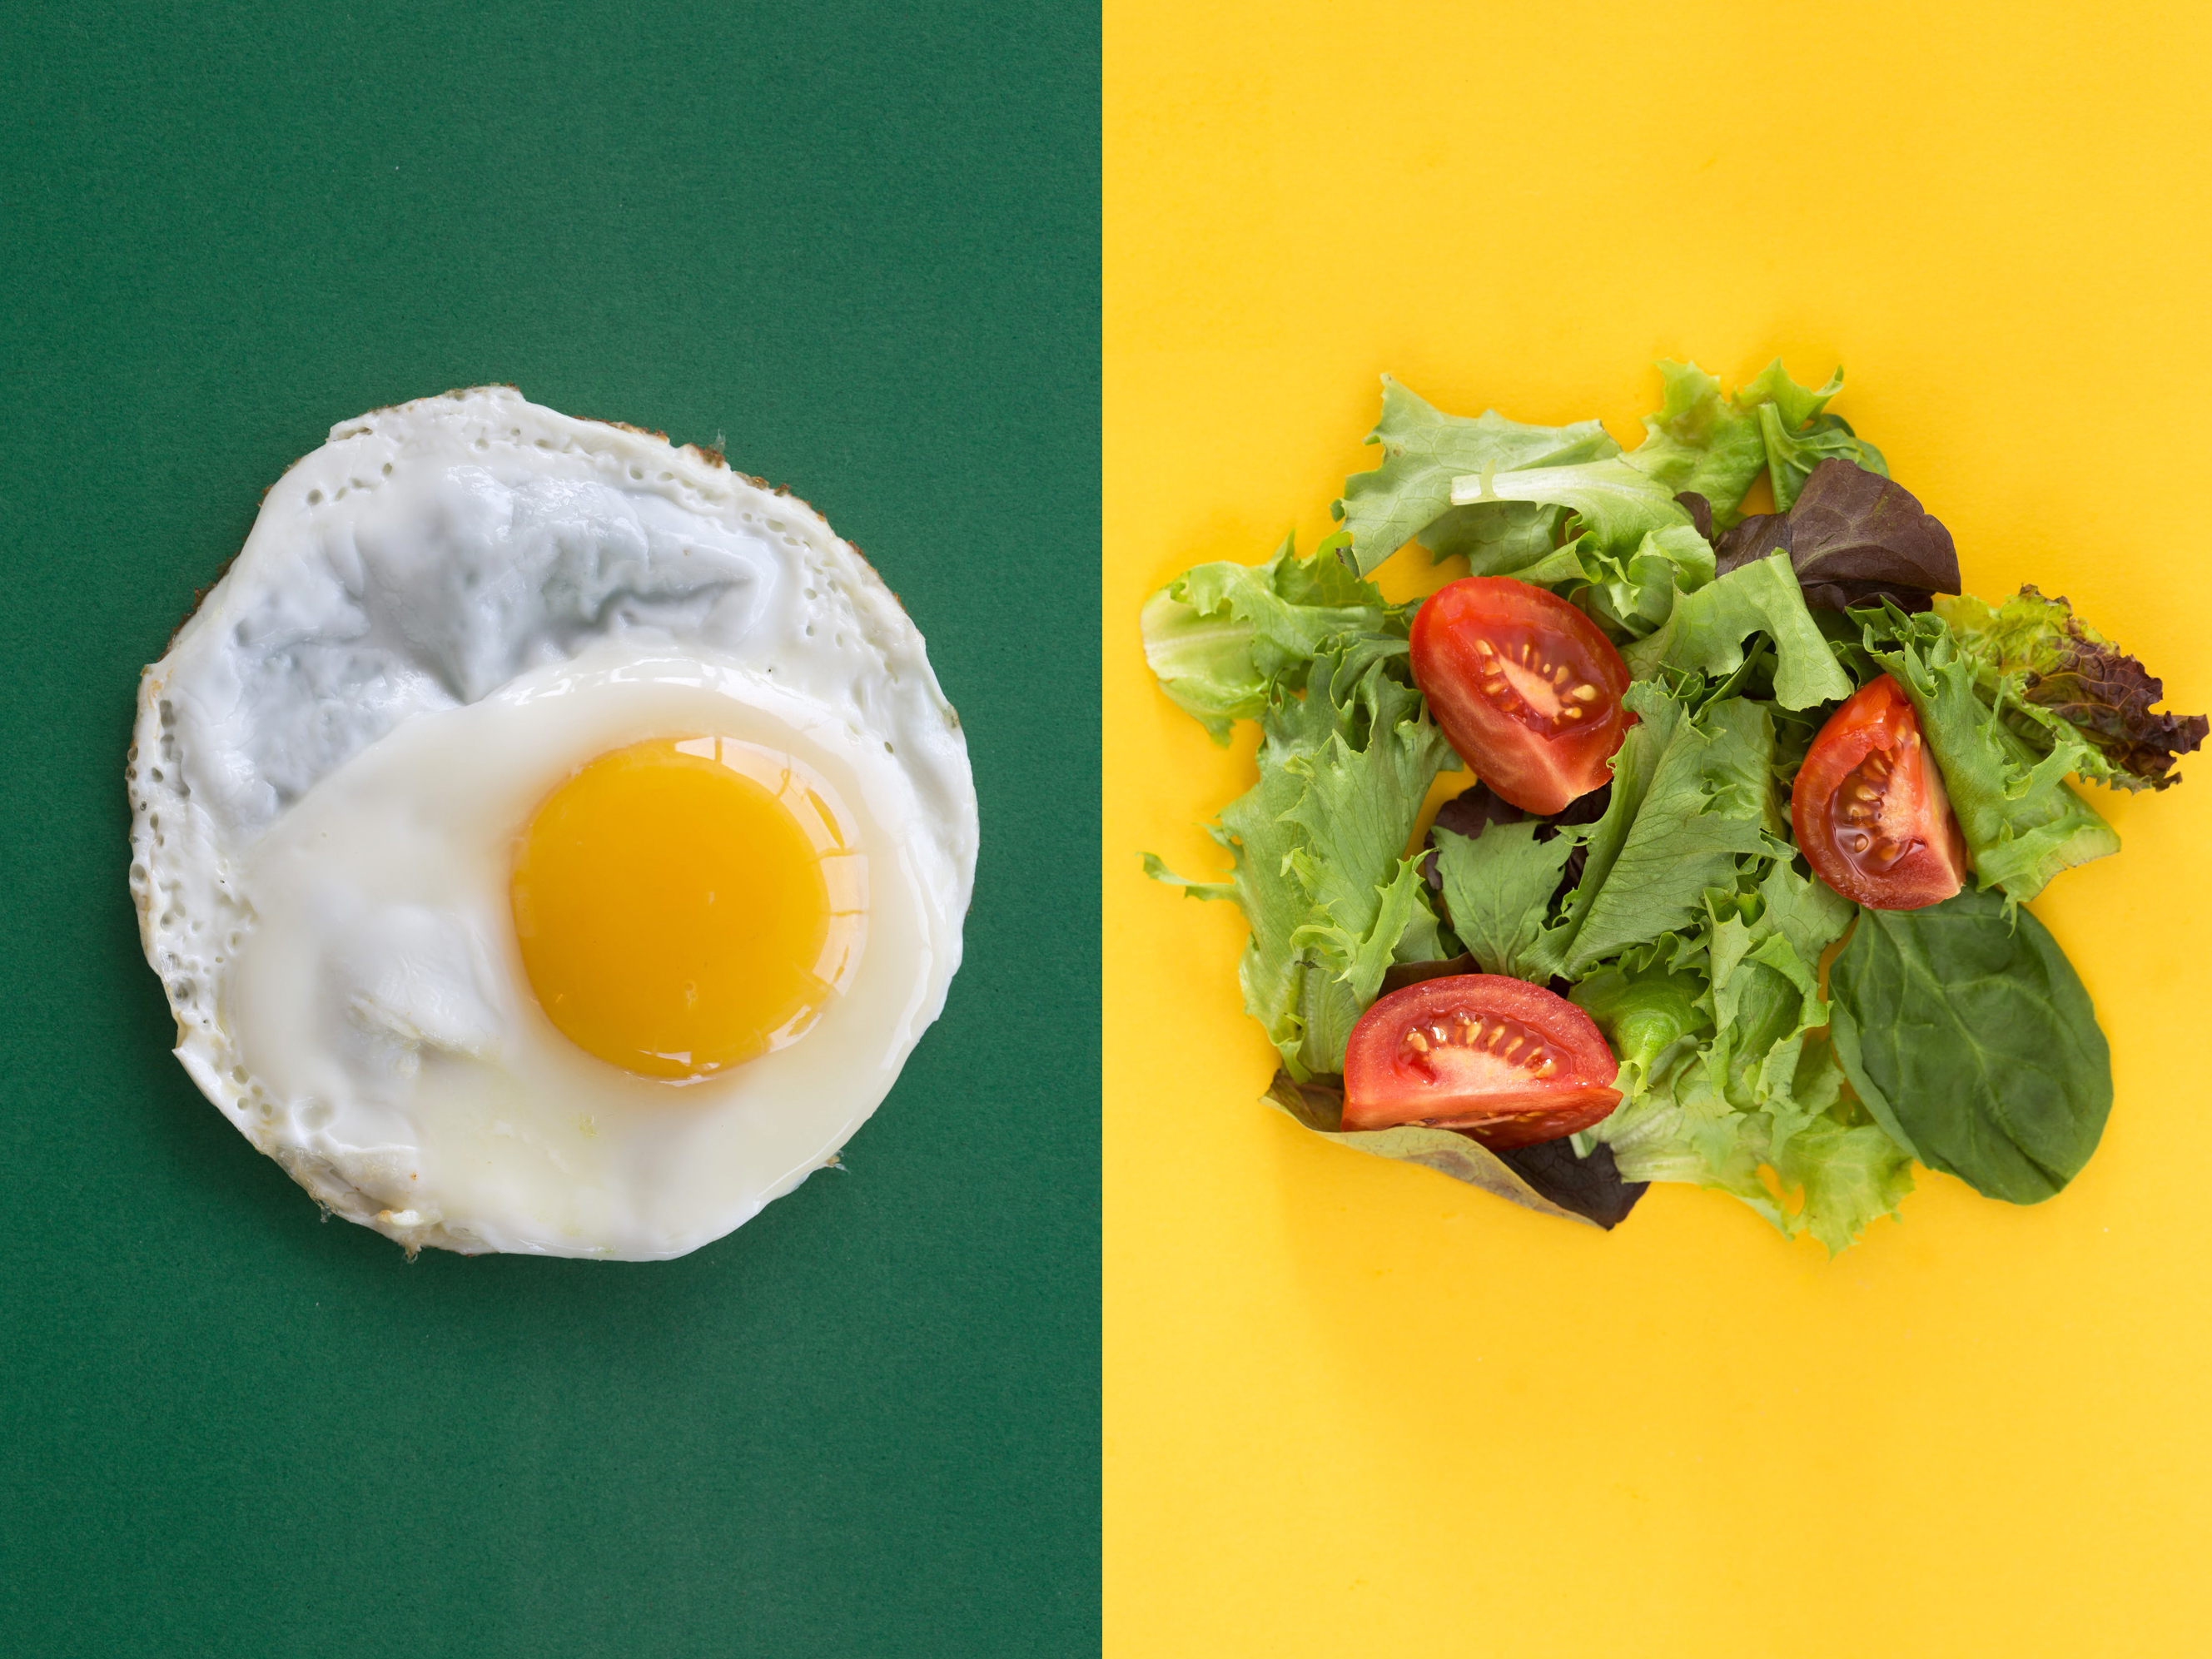 Dynamic Duos: How To Get More Nutrition By Pairing Foods